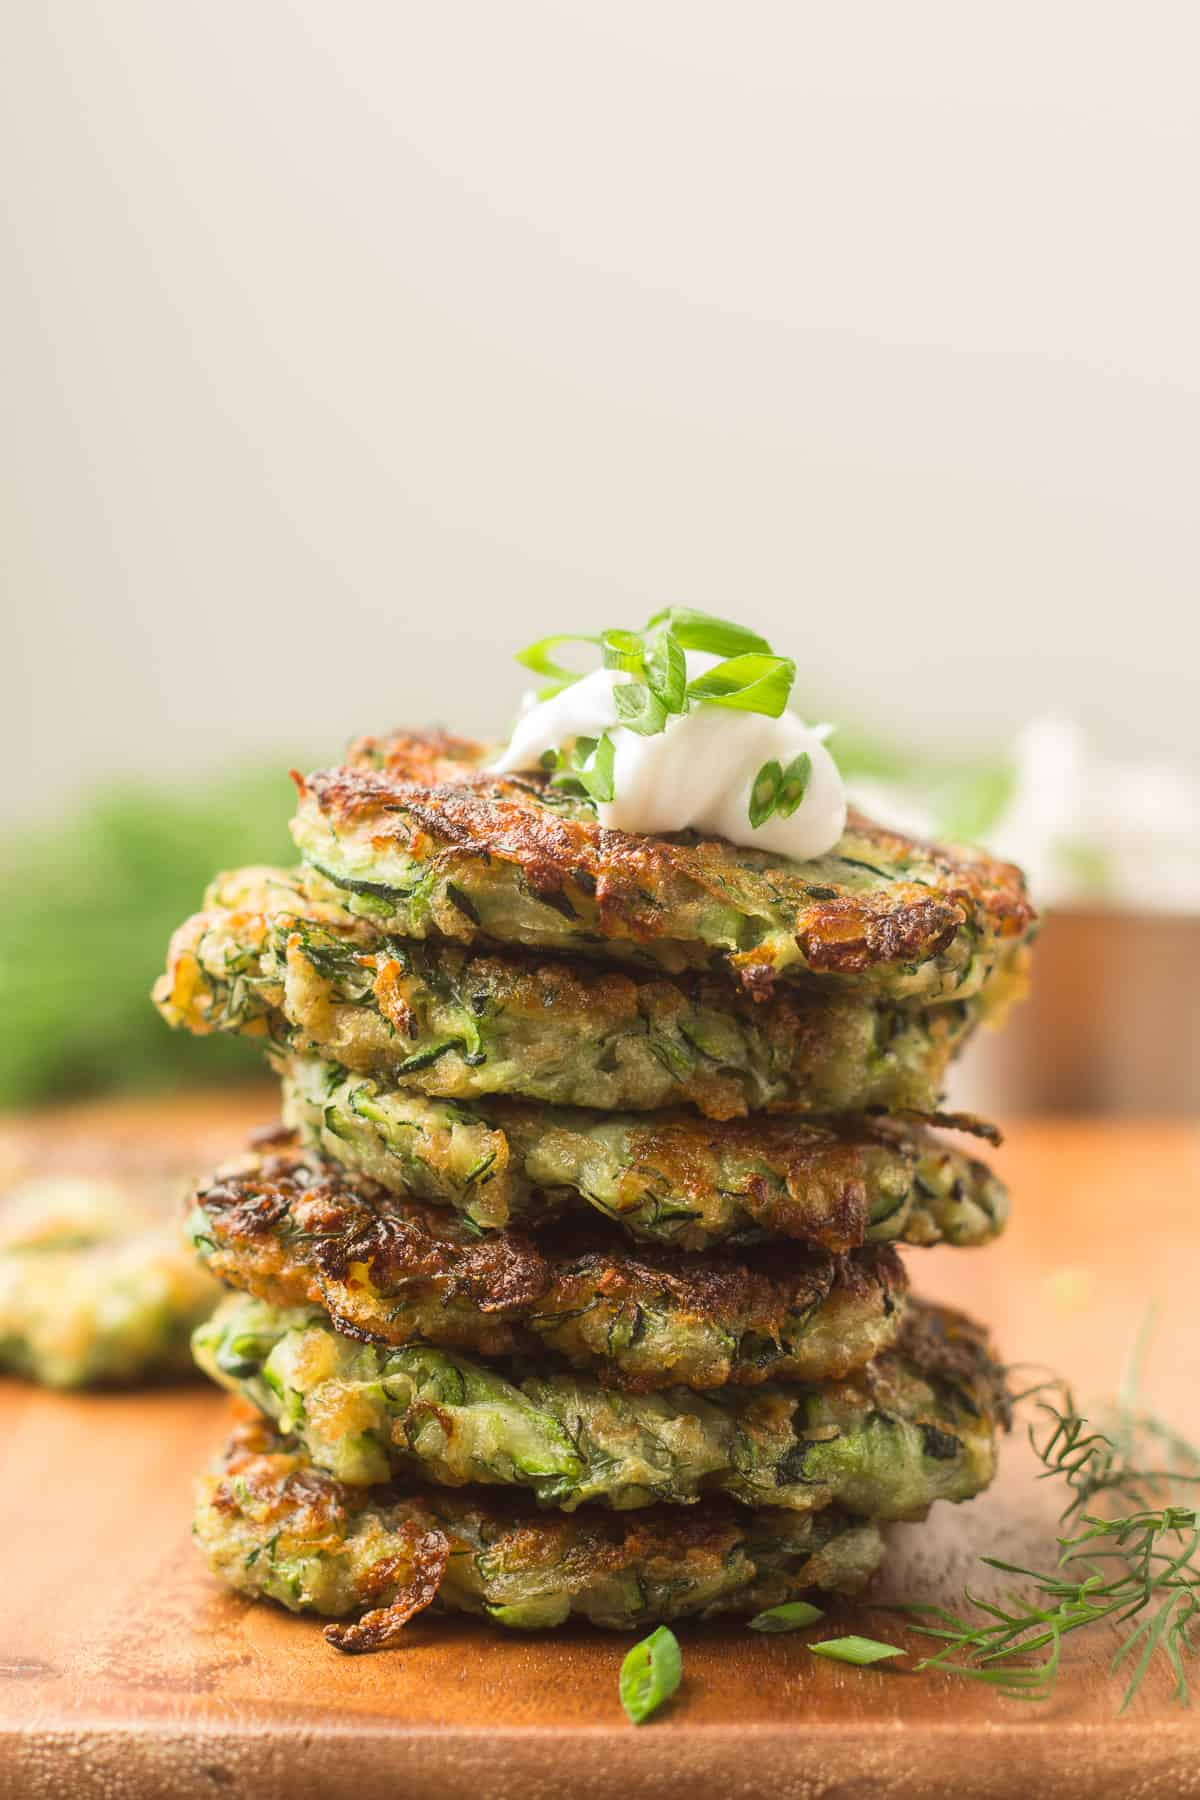 Stack of Vegan Zucchini Fritters with Cashew Cream and Chives on Top